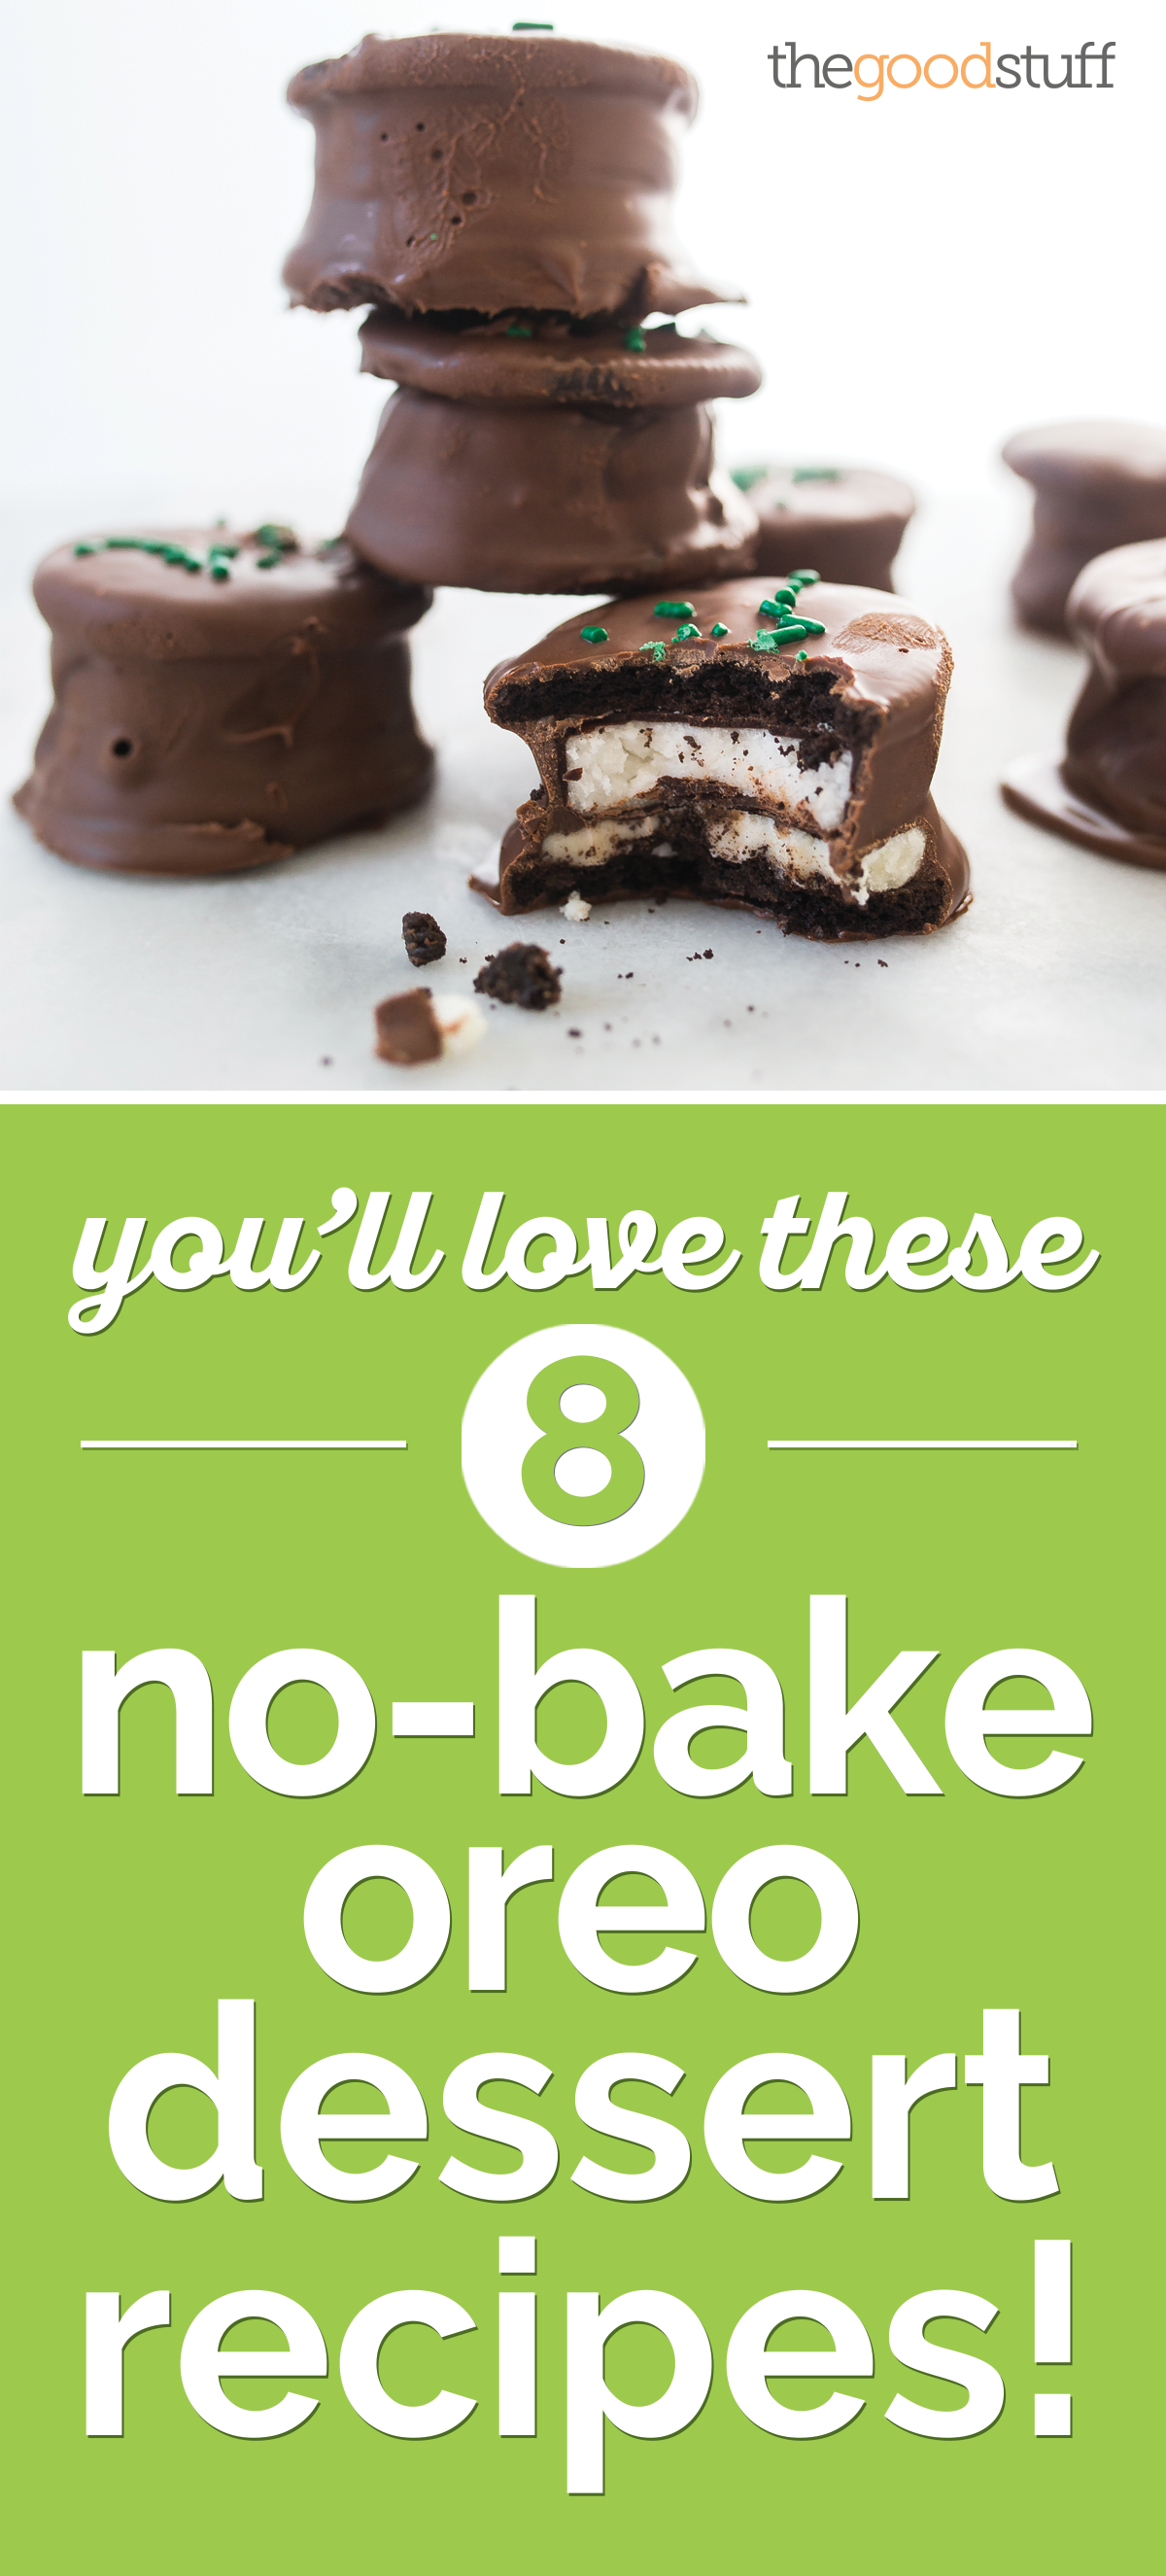 You'll Love These 7 No-Bake Oreo Dessert Recipes! | thegoodstuff